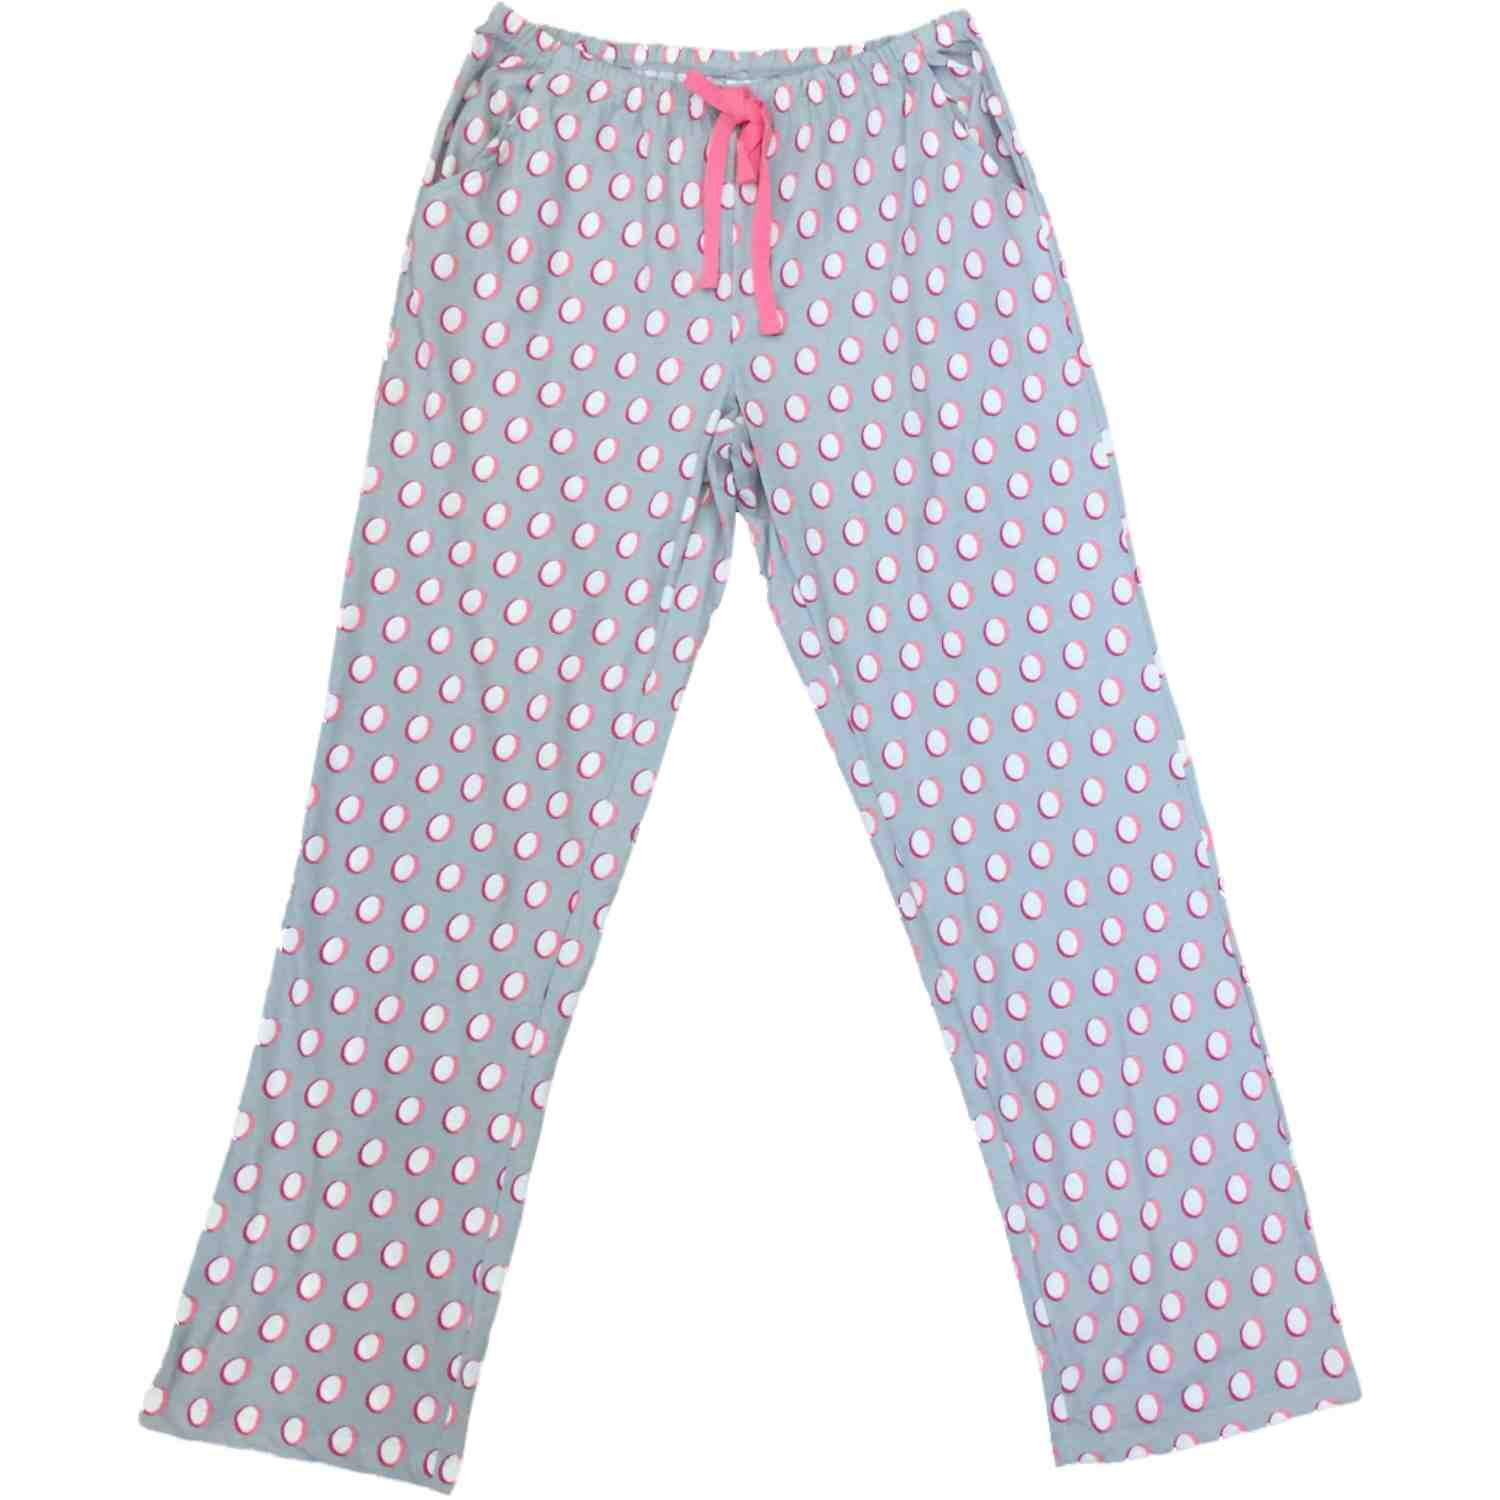 Womens Gray White Pink Polka Dot Sleep Pants Dotted Pajama